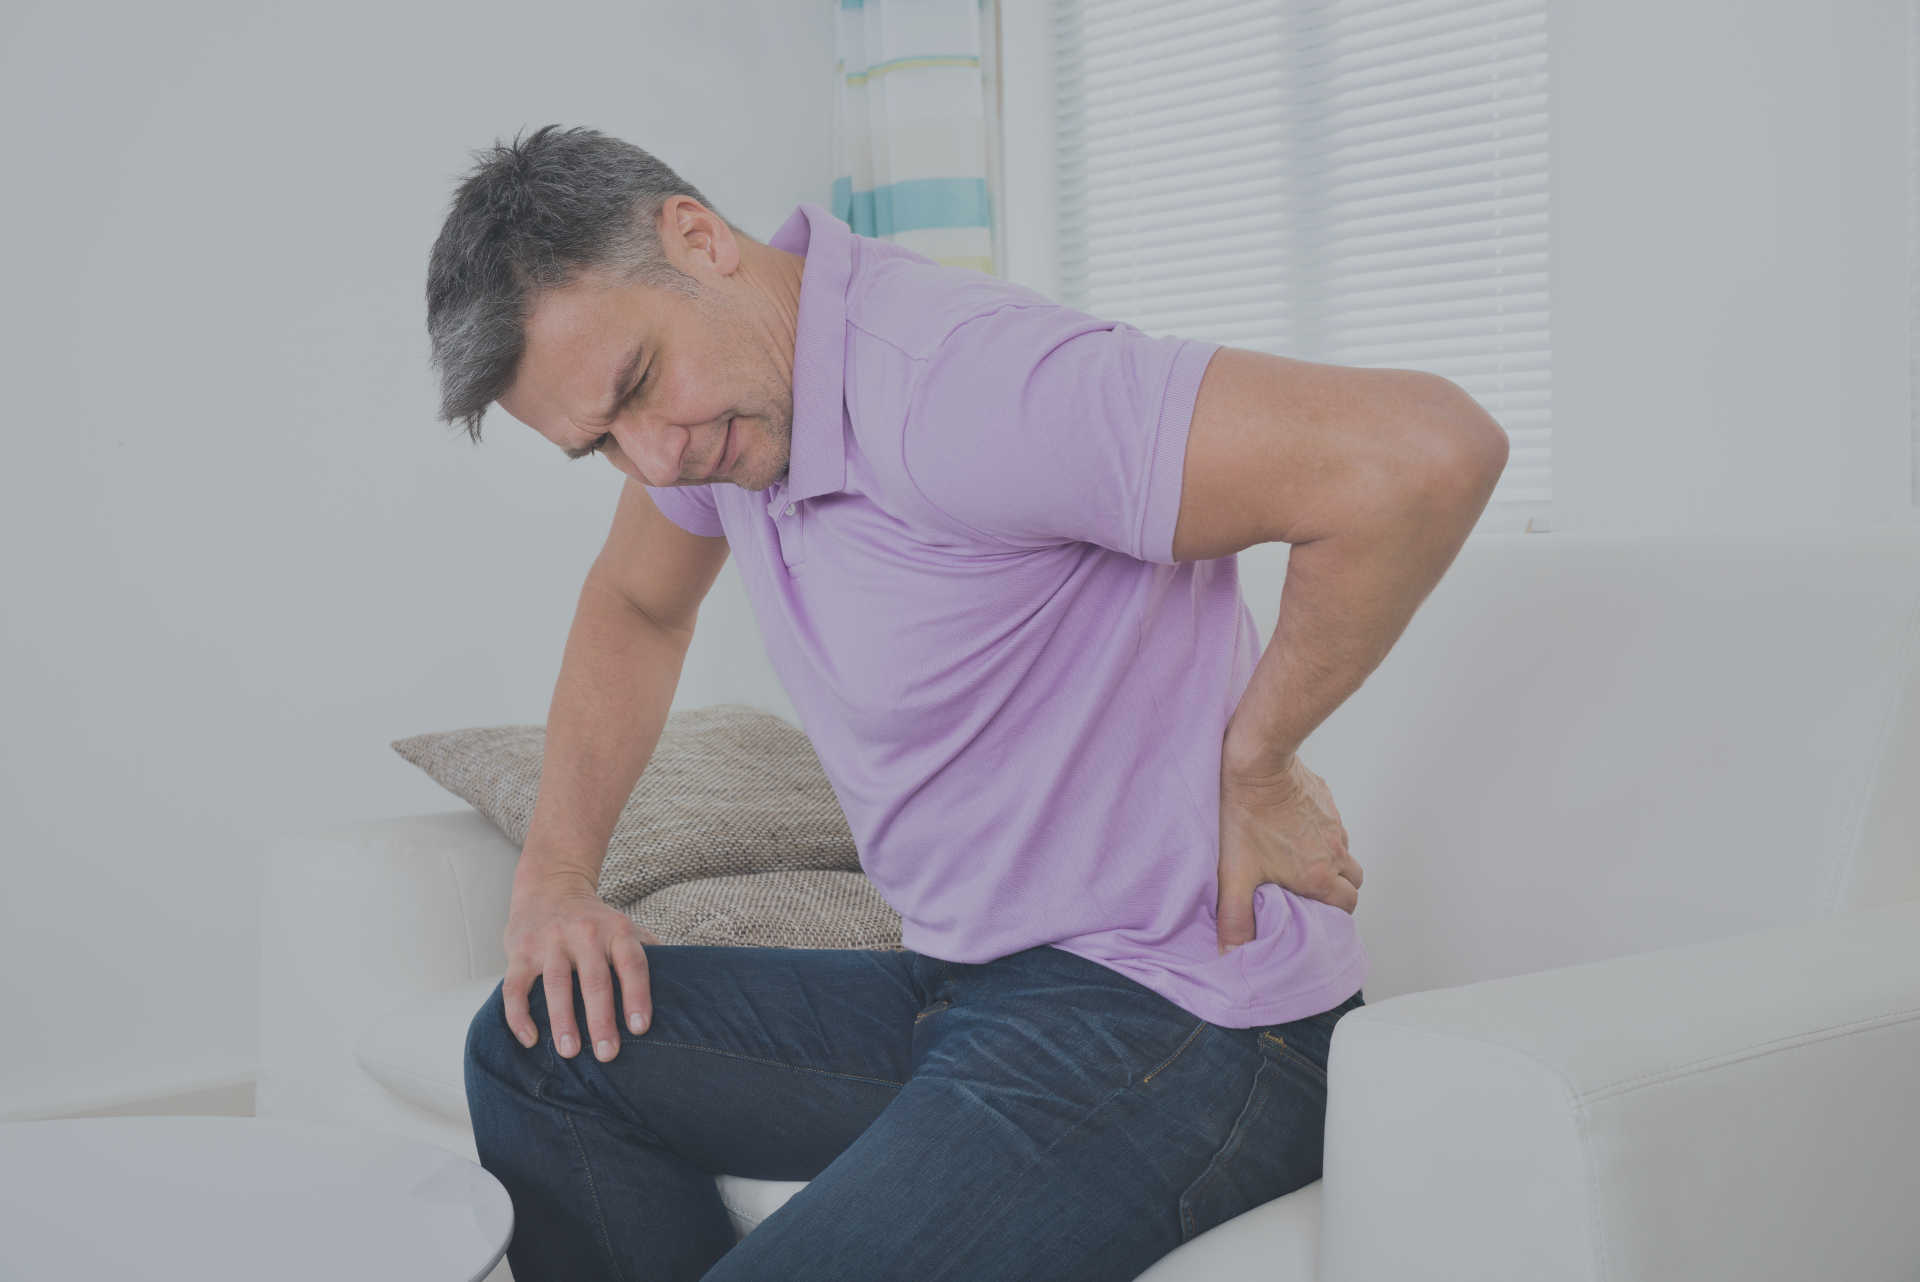 man sitting down holds his lower back in pain